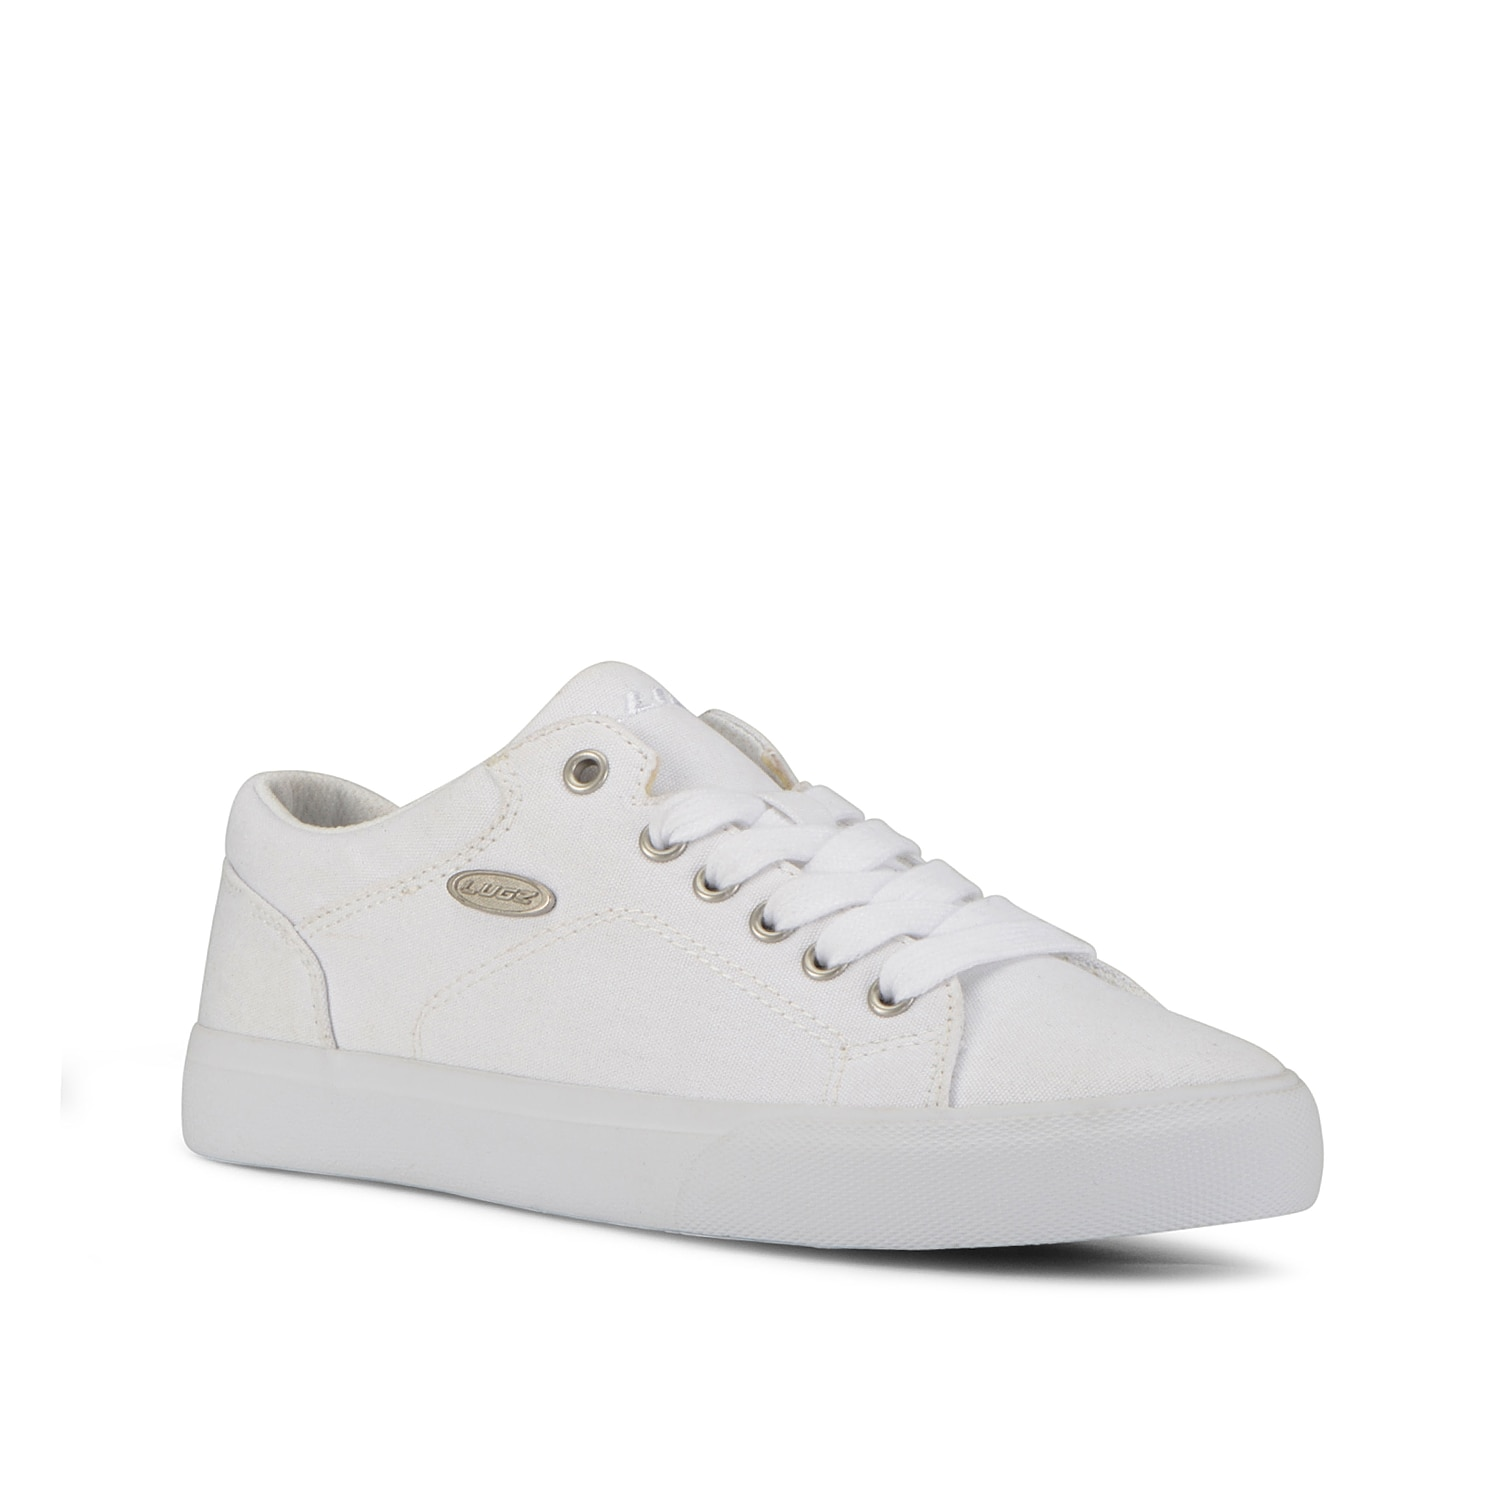 Give your ensemble limitless styling options with the Regent sneaker from Lugz. This women\\\'s low-top features lace-up styling and will go great with anything from dresses to ankle jeans!